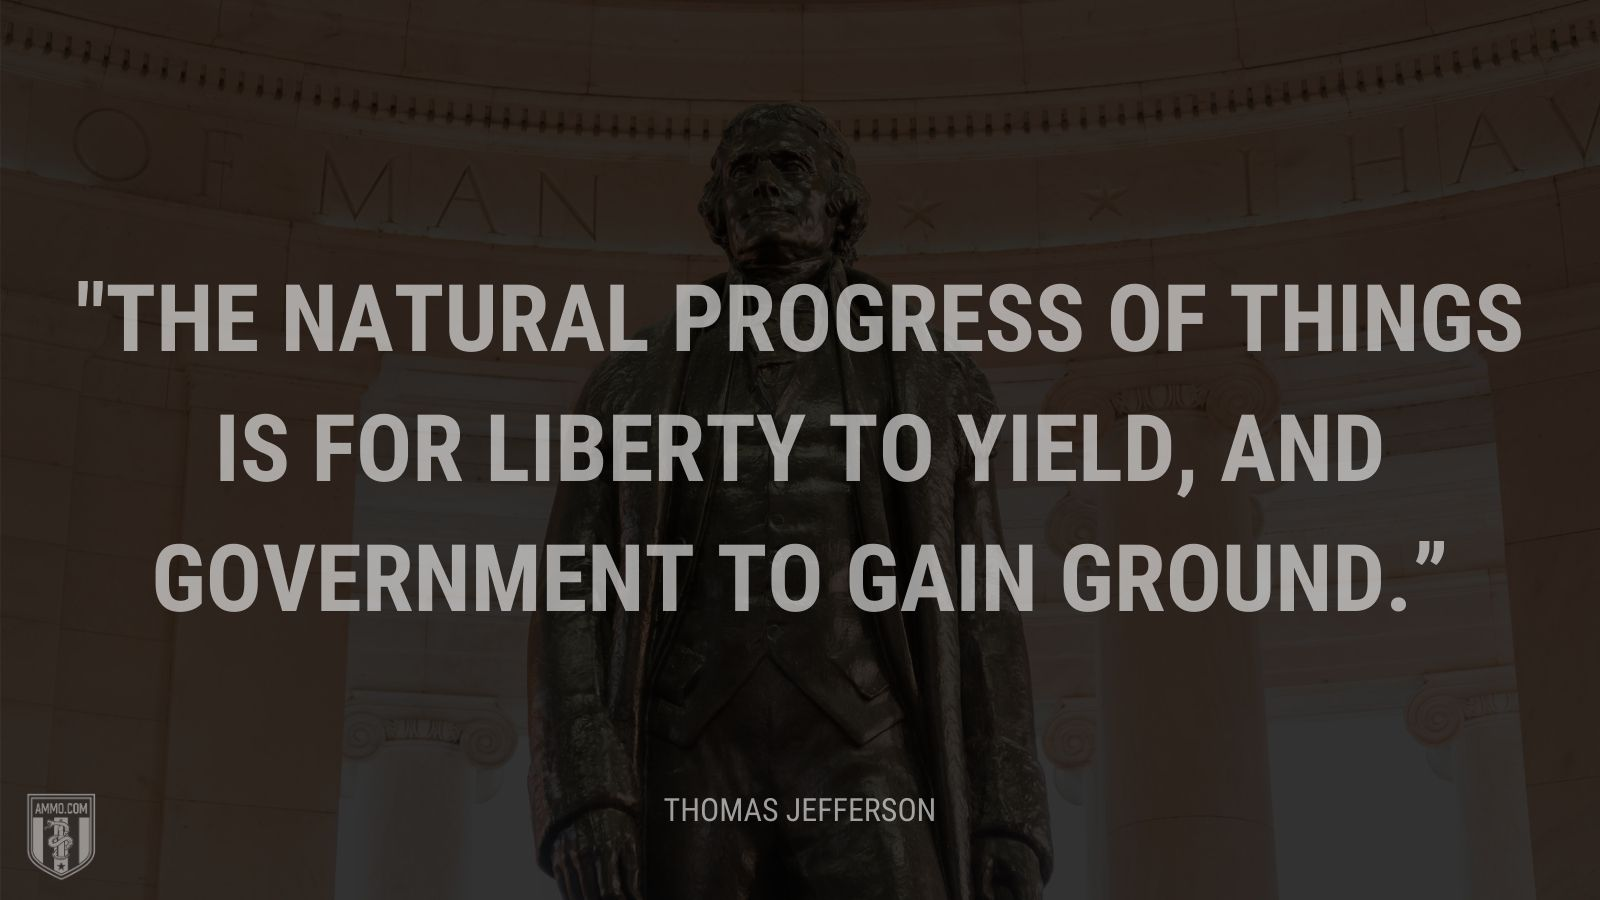 """The natural progress of things is for liberty to yield, and government to gain ground."" - Thomas Jefferson"